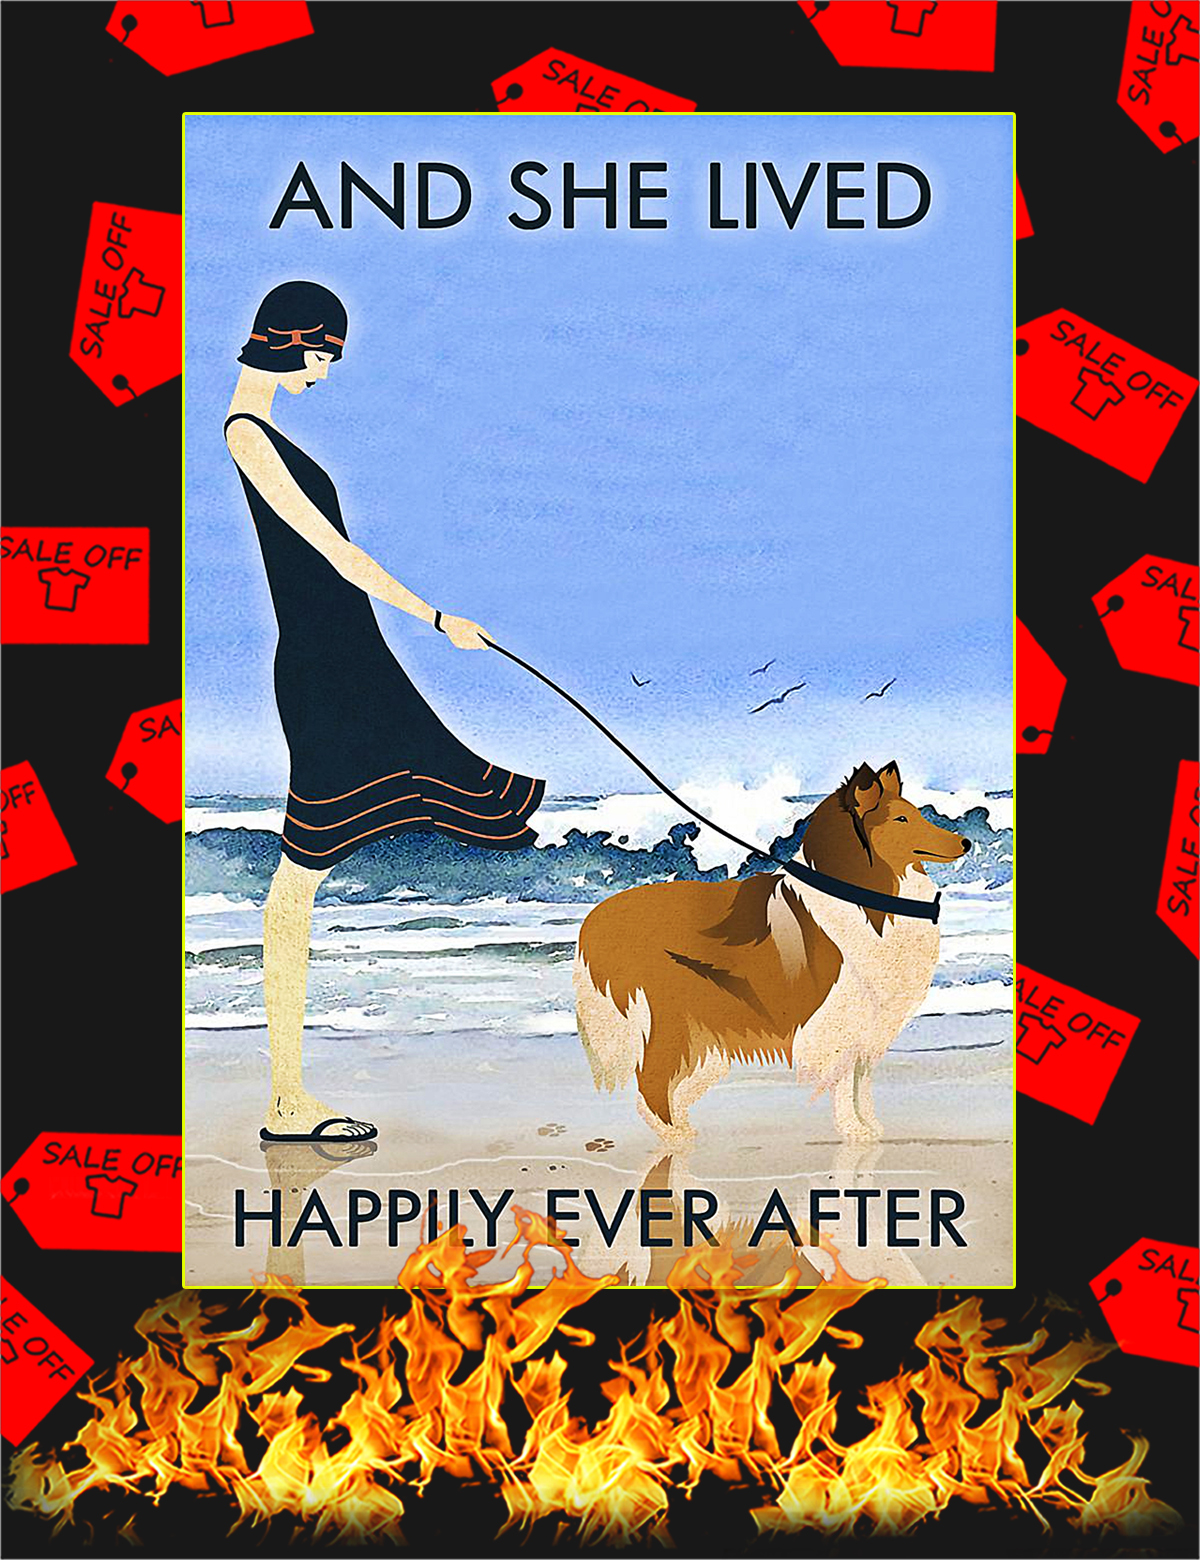 Beach and collie dog and she lived happily ever after poster - A4